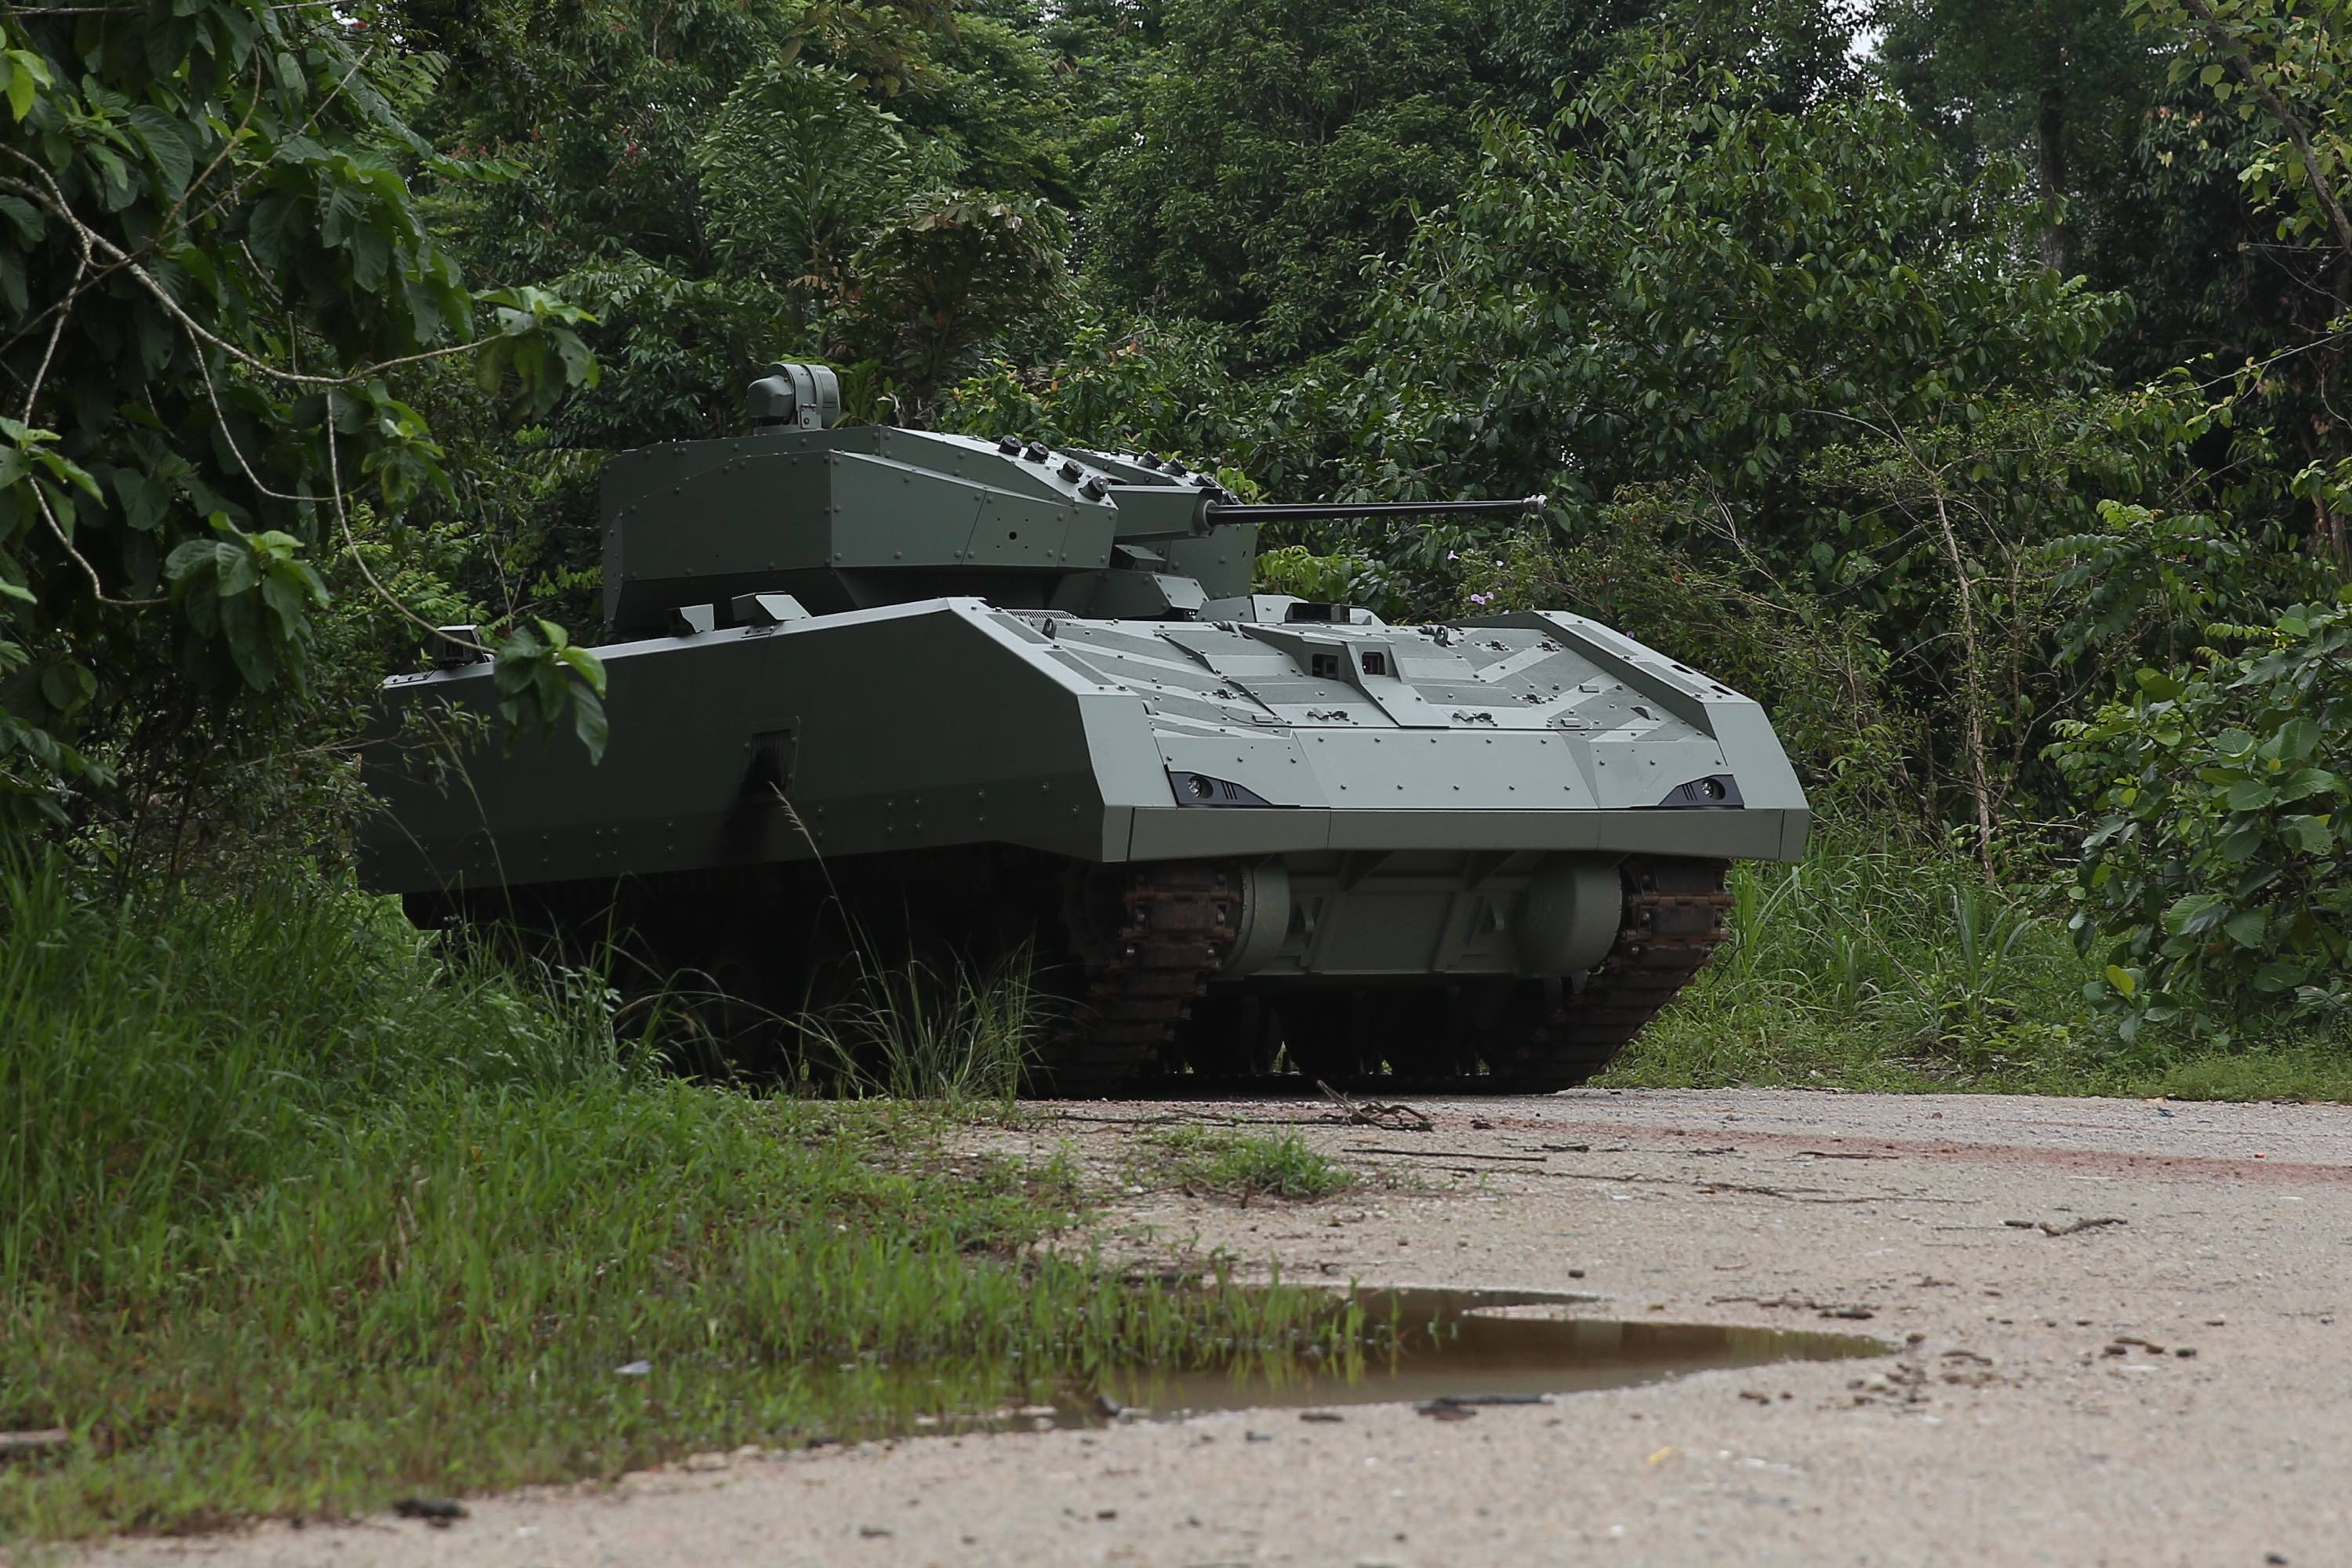 Singapore Armed Forces Hunter Armoured Fighting Vehicle (AFV)